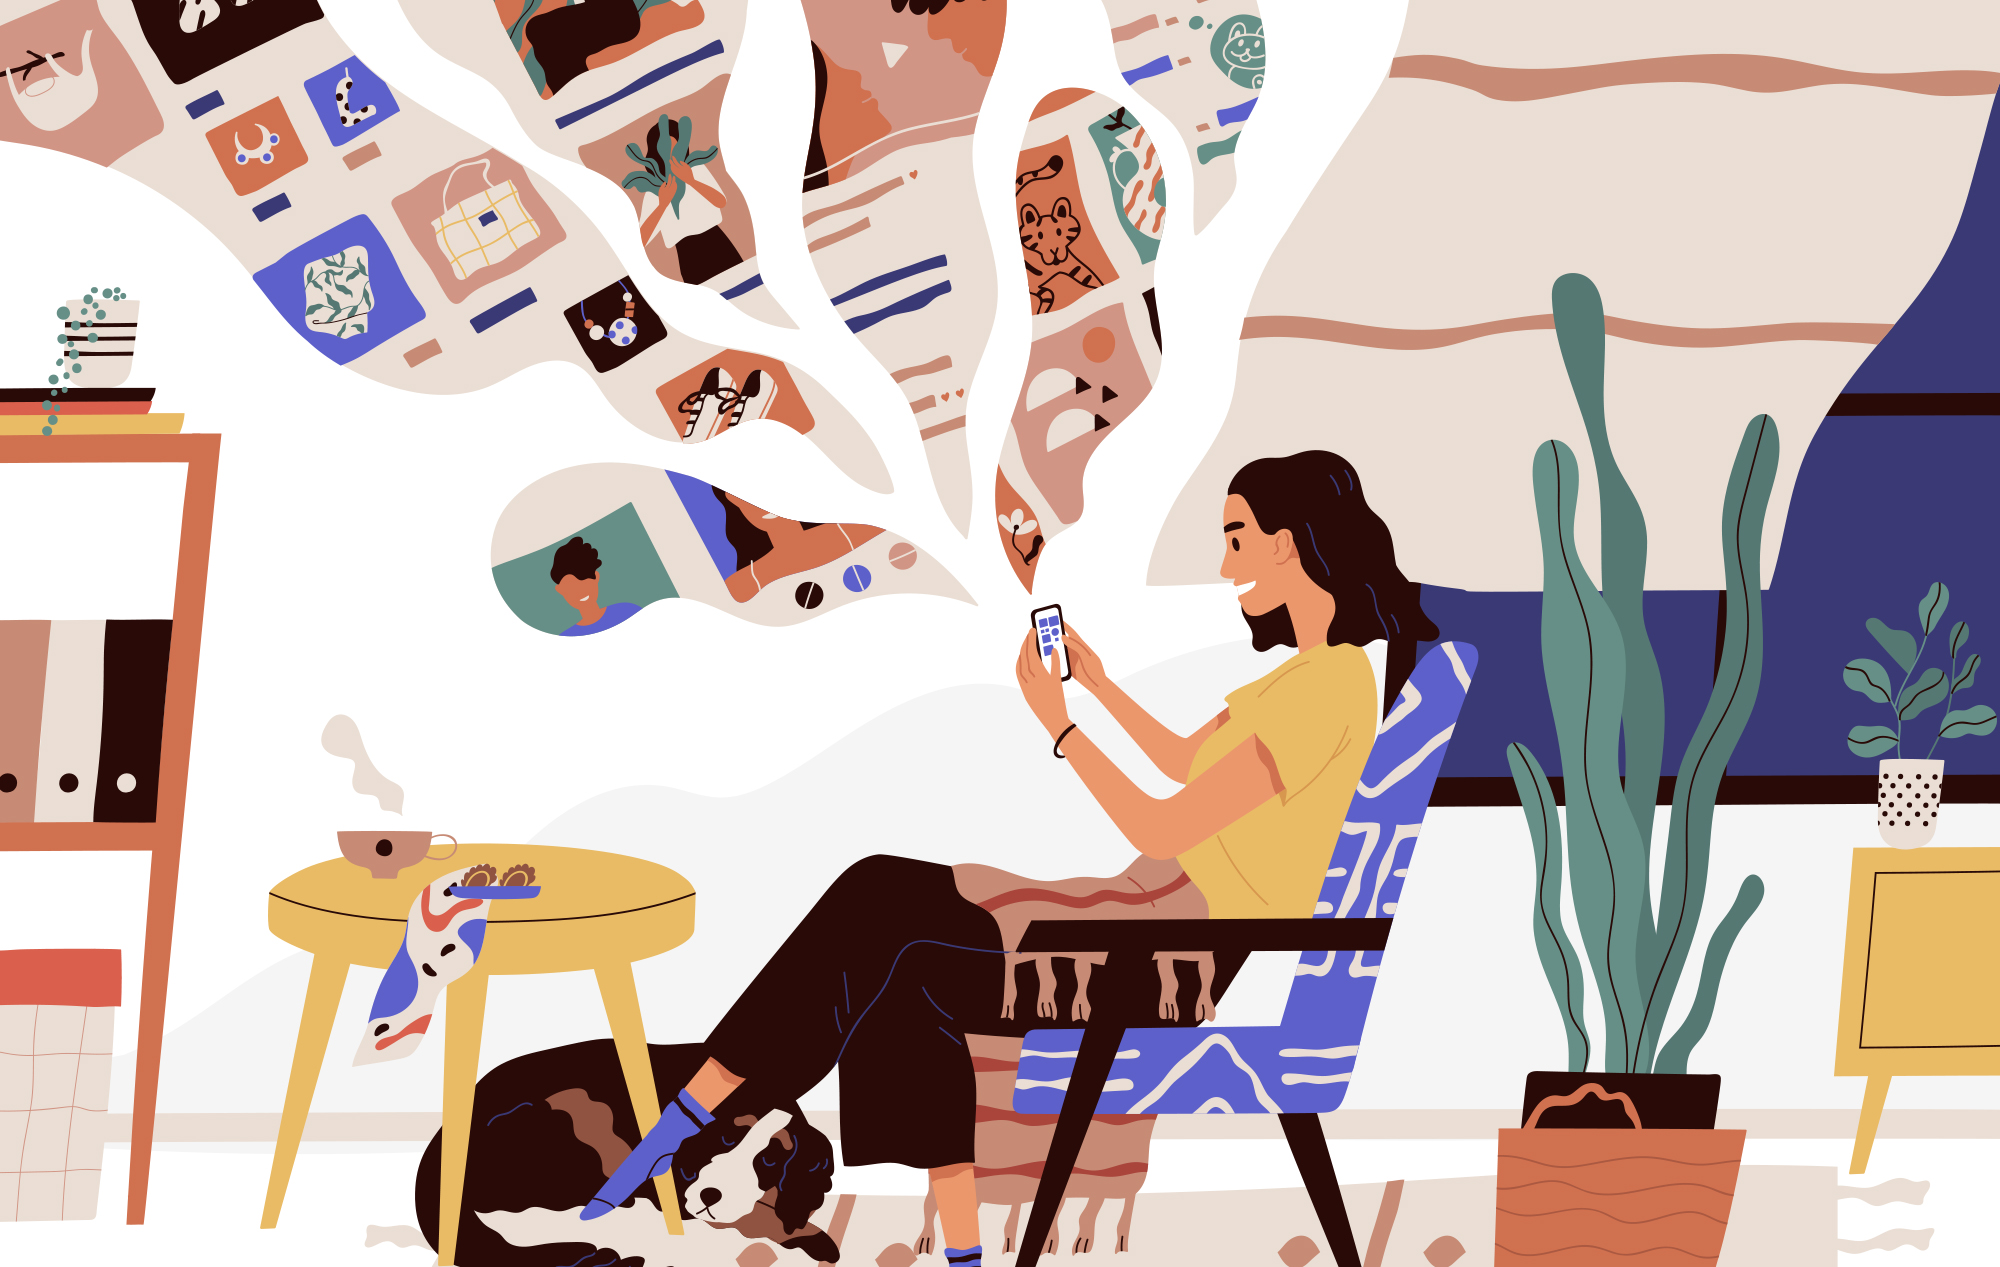 Digital illustration. A person with a delighted expression sits in a colorful, cozy space, looking out at a smart phone they are holding in their hands. A dreamscape of images from the web, such as a portrait photo, a pair of shoes and a tiger, emanate from their mobile phone like puffs of smoke.